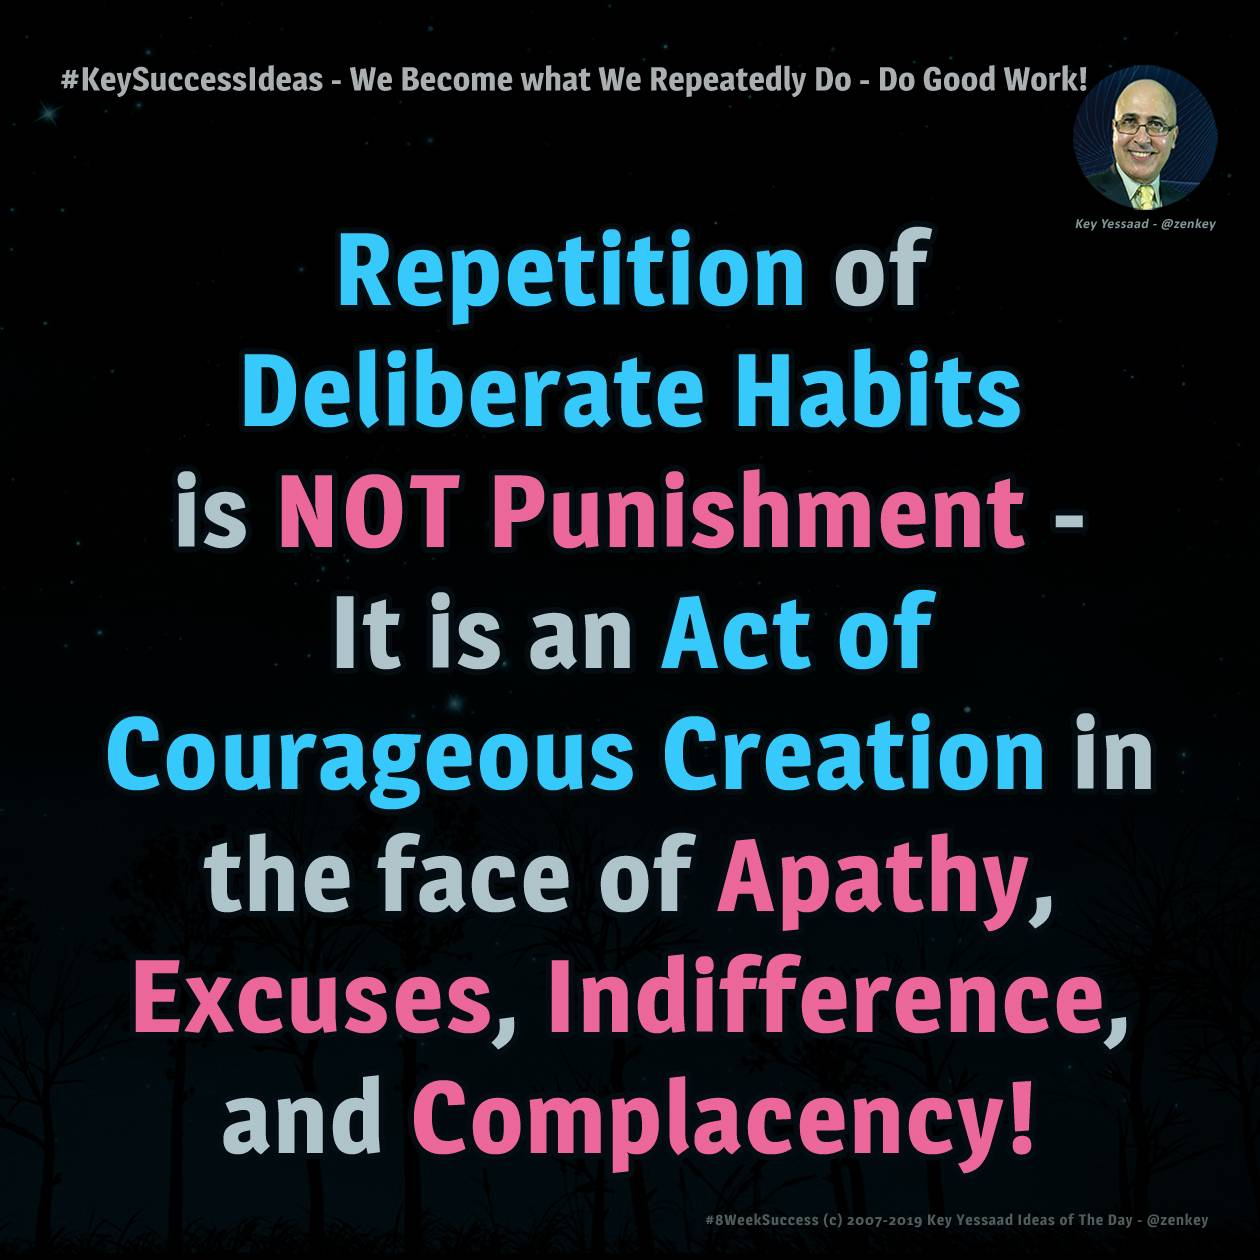 #KeySuccessIdeas - We Become what We Repeatedly Do - Do Good Work!